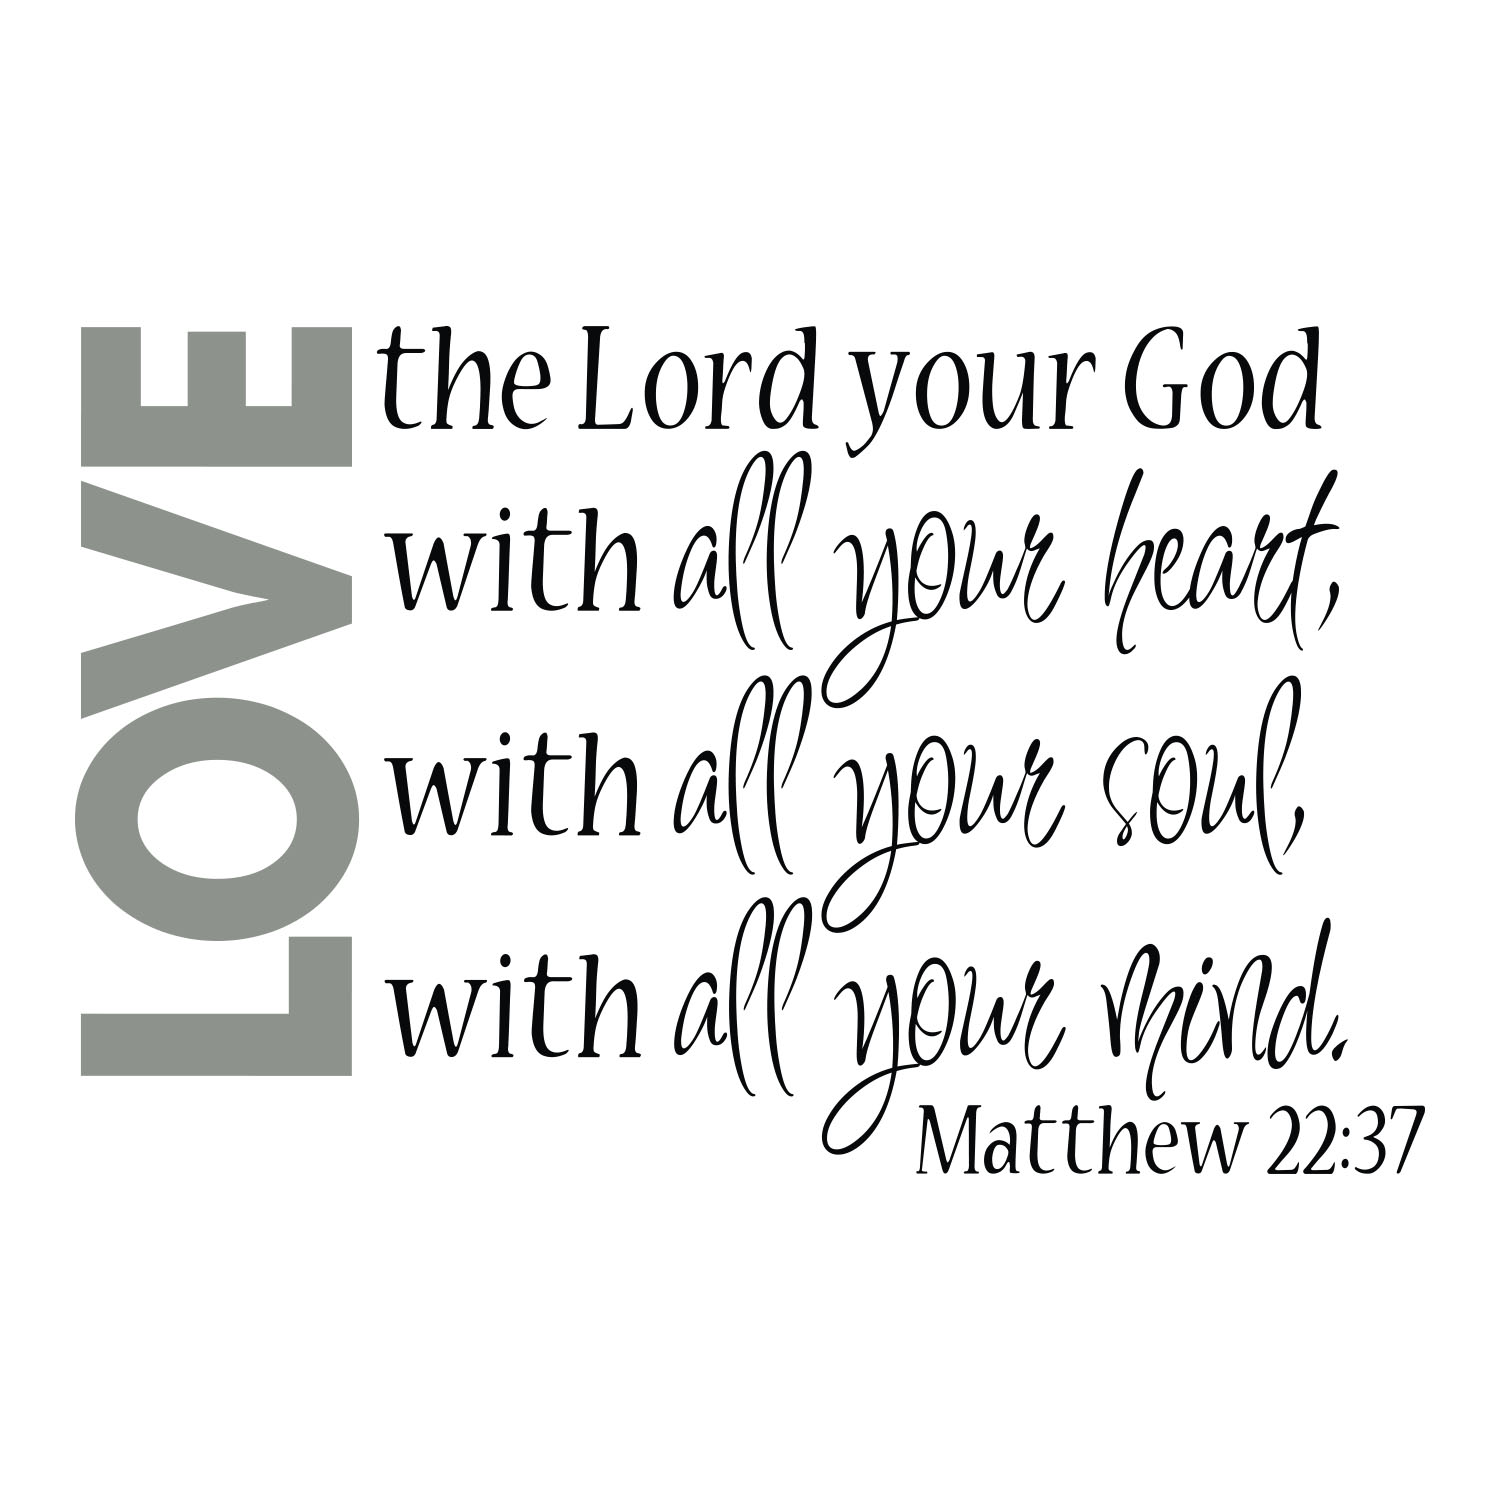 The Lord S Love Wall Decal: Matthew 22V37 Vinyl Wall Decal 2 Love The Lord Your God